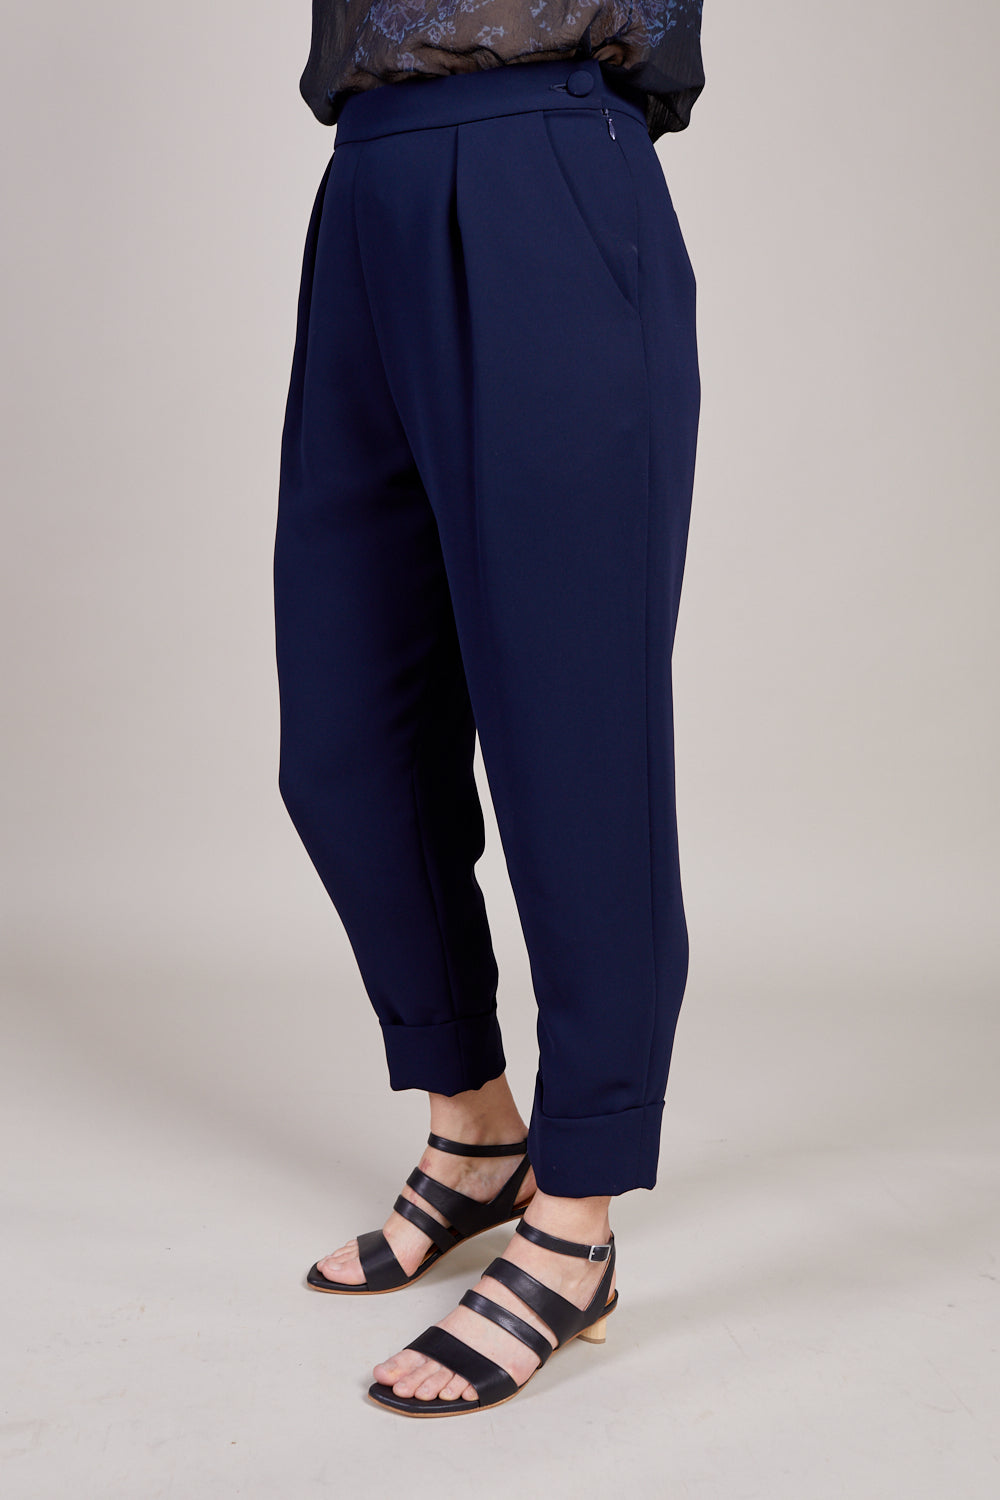 Westside Pant in Navy